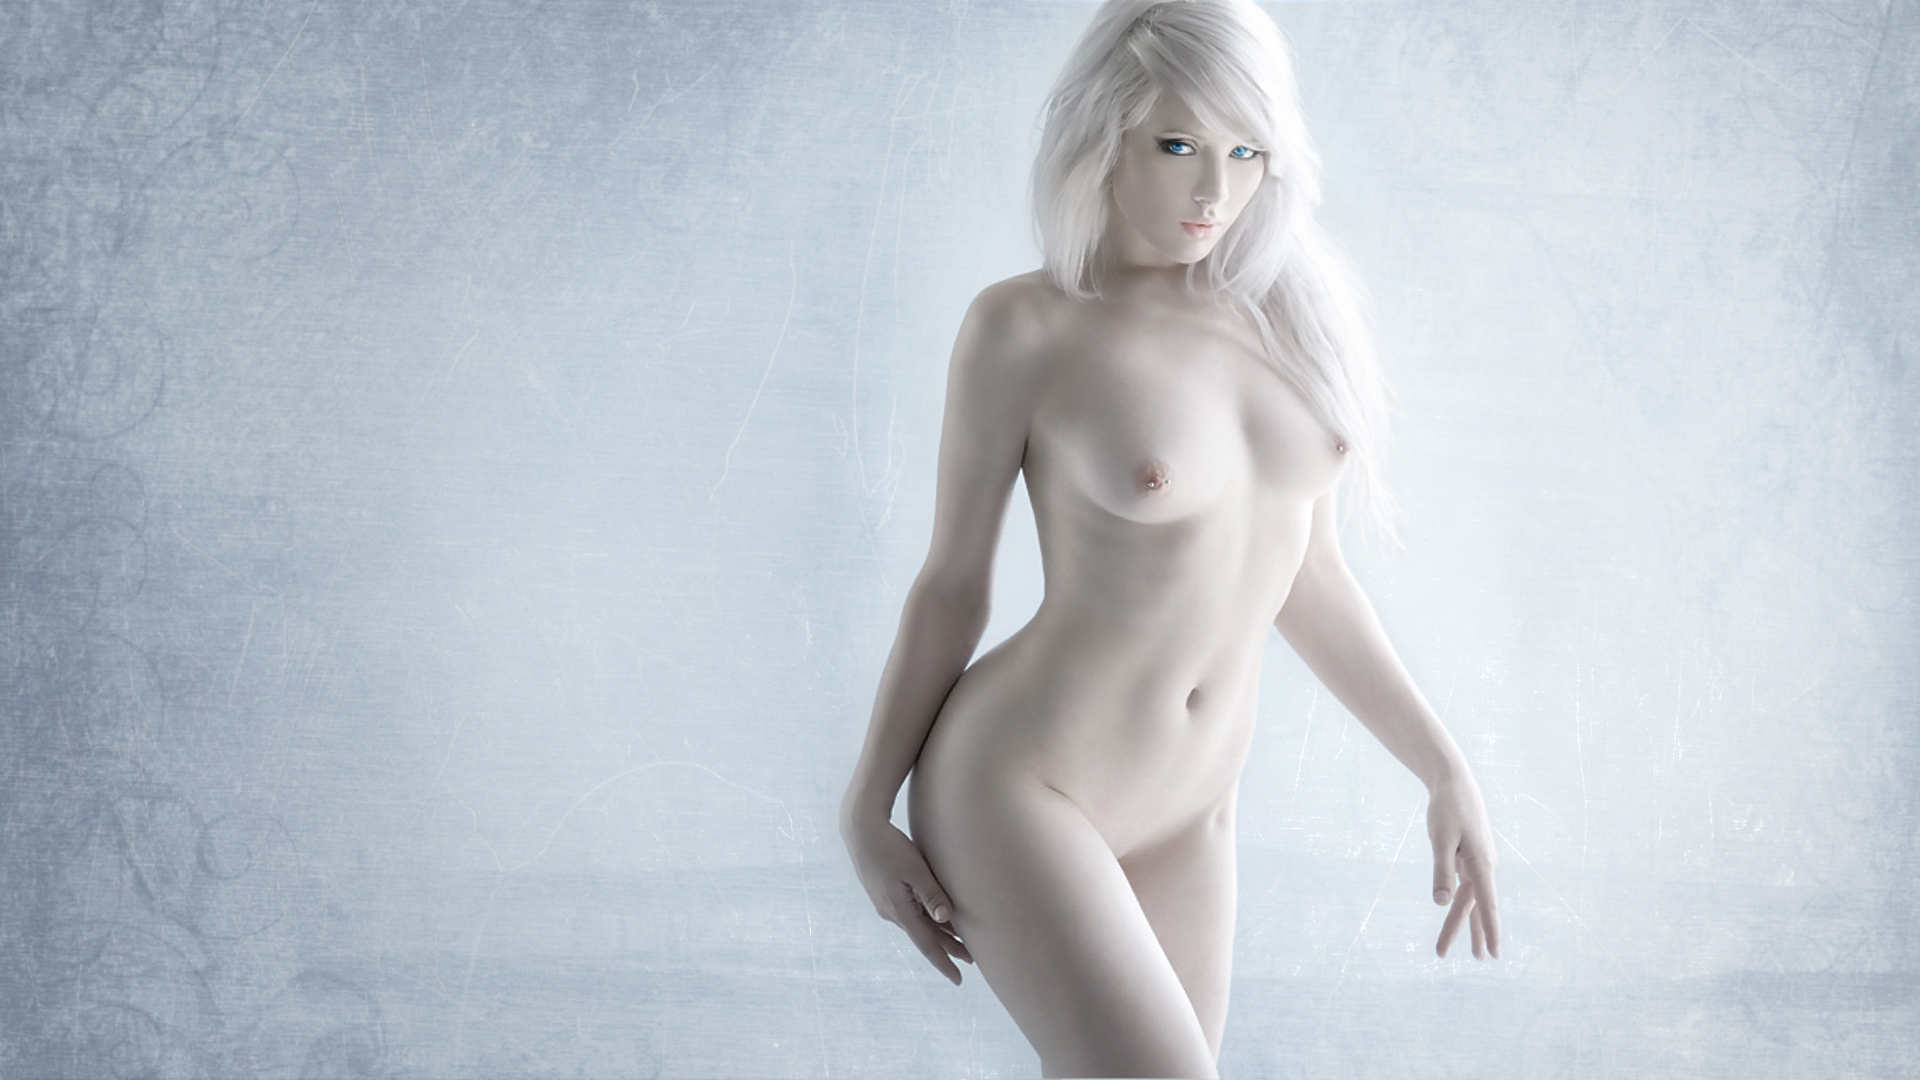 Black albino woman nude